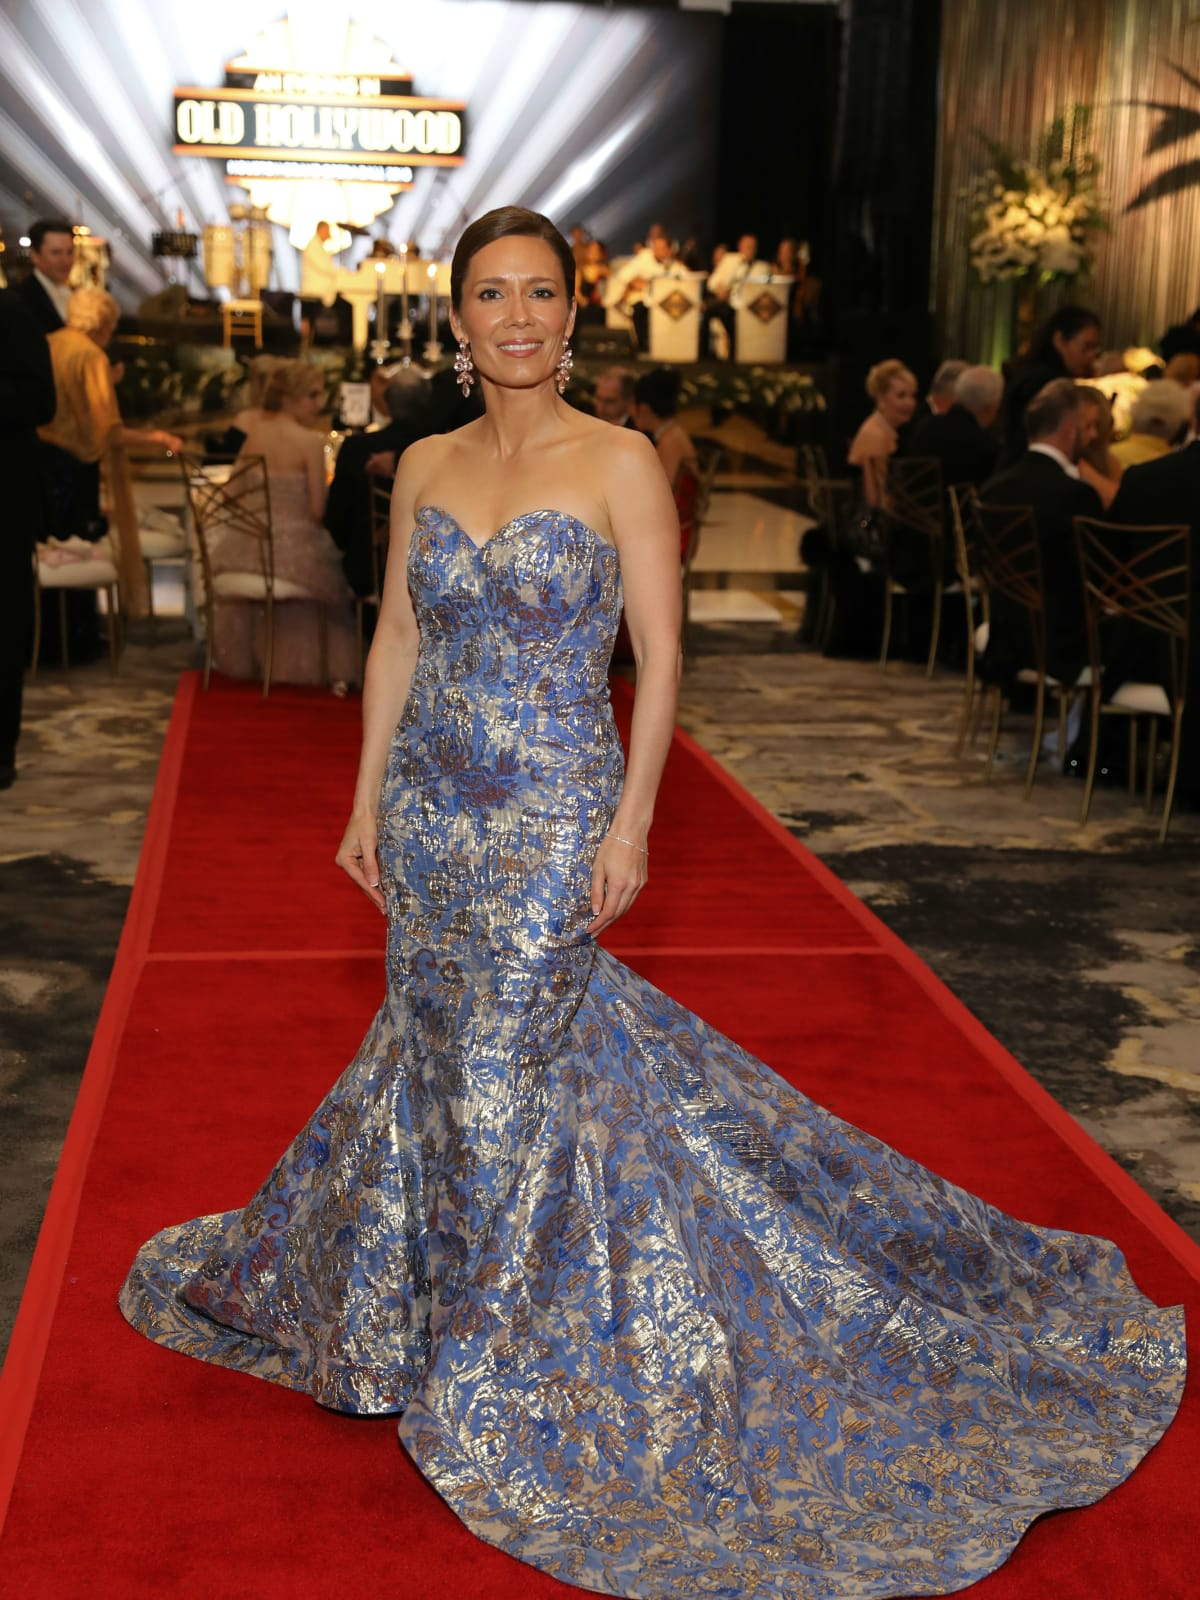 Opera Ball gowns Diana Trevino in Narciso Rodriguez